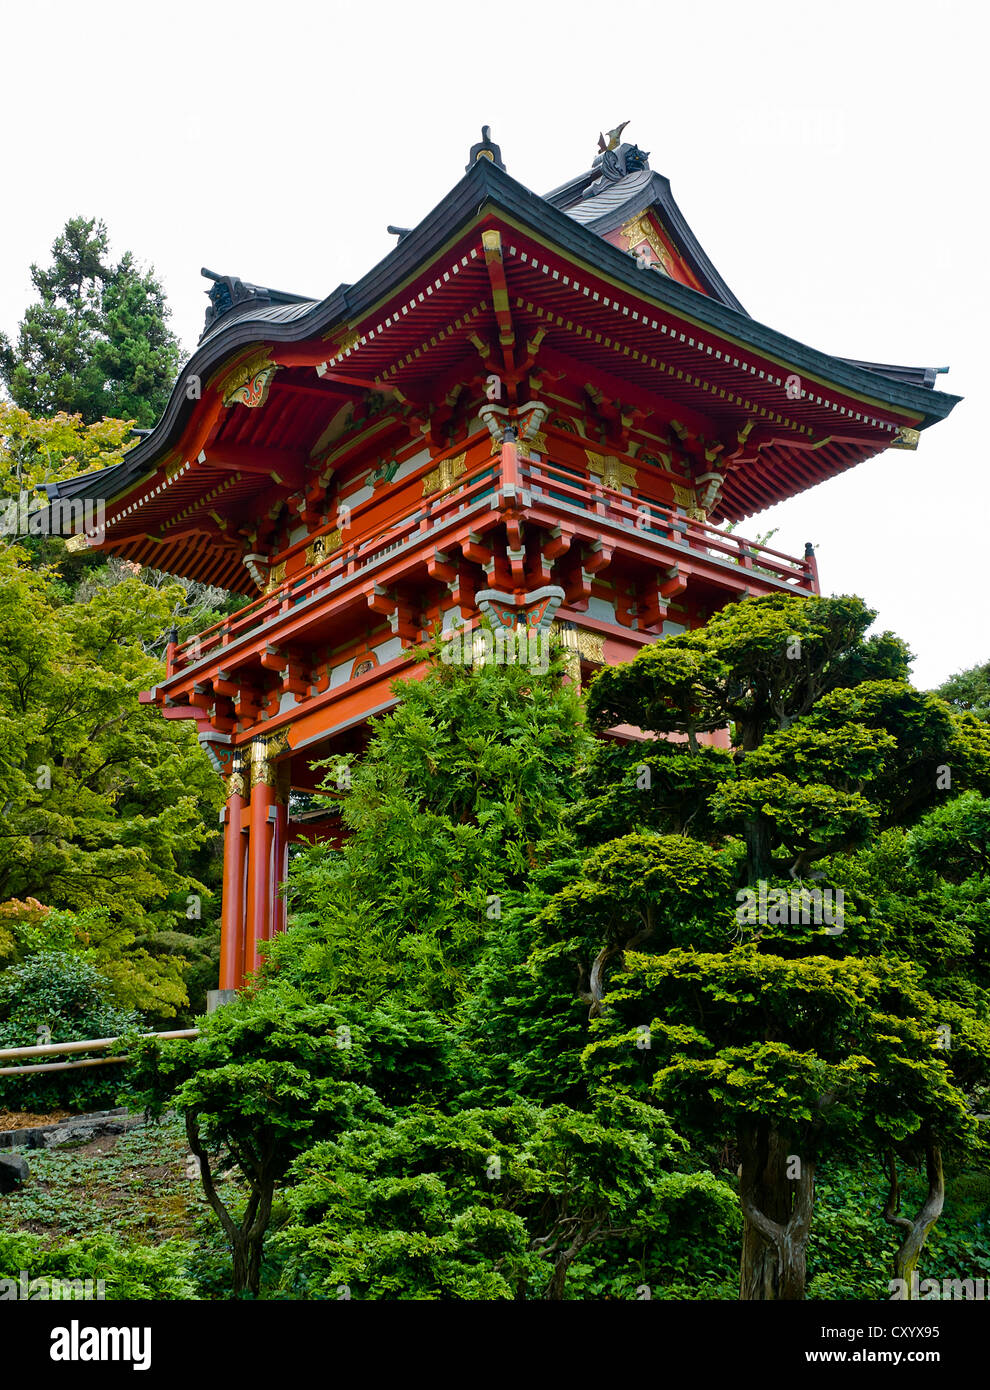 Japanese Tee Garden In Golden Gate Park San Francisco California, Multiple  Level Red Roof Pagoda